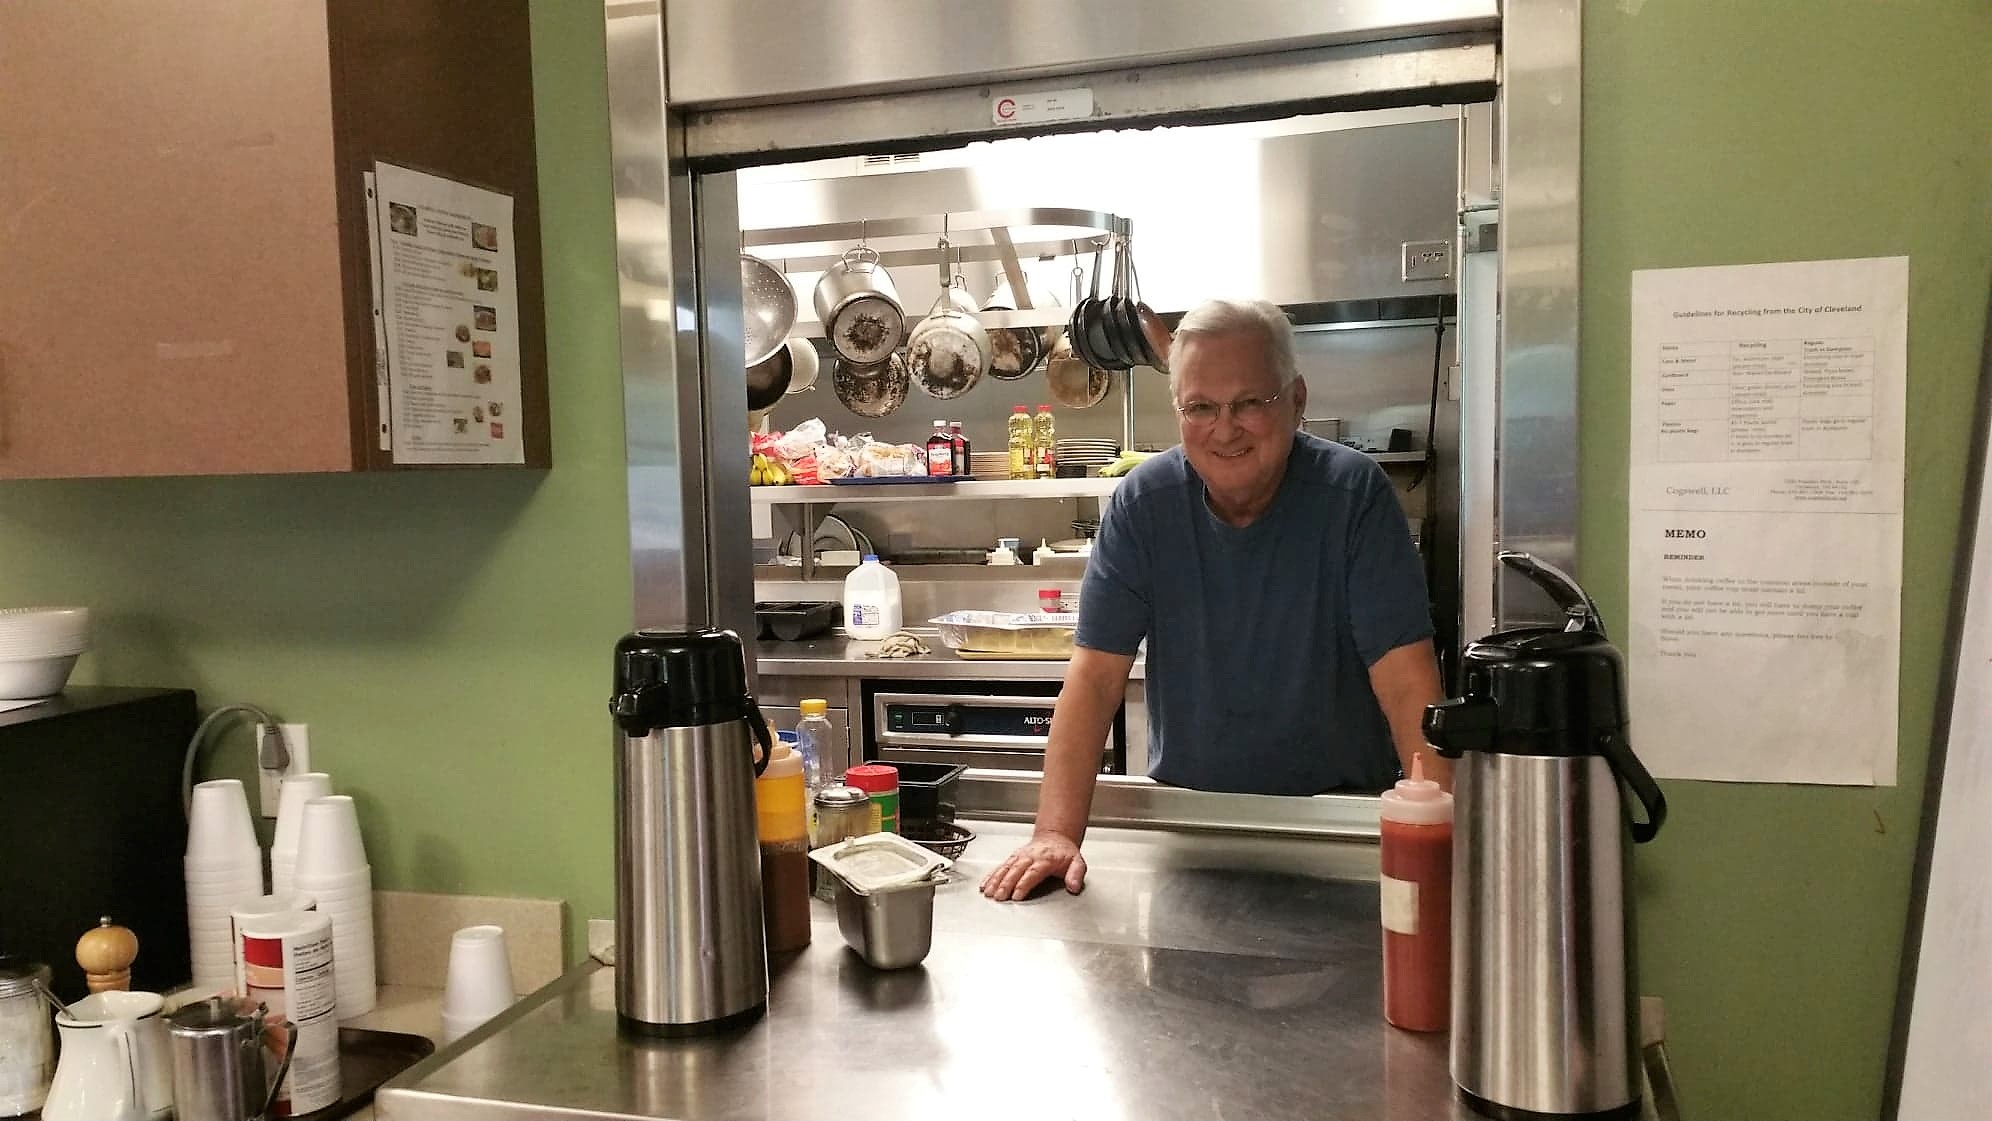 Retired world traveler now shares skills in Cogswell's kitchen